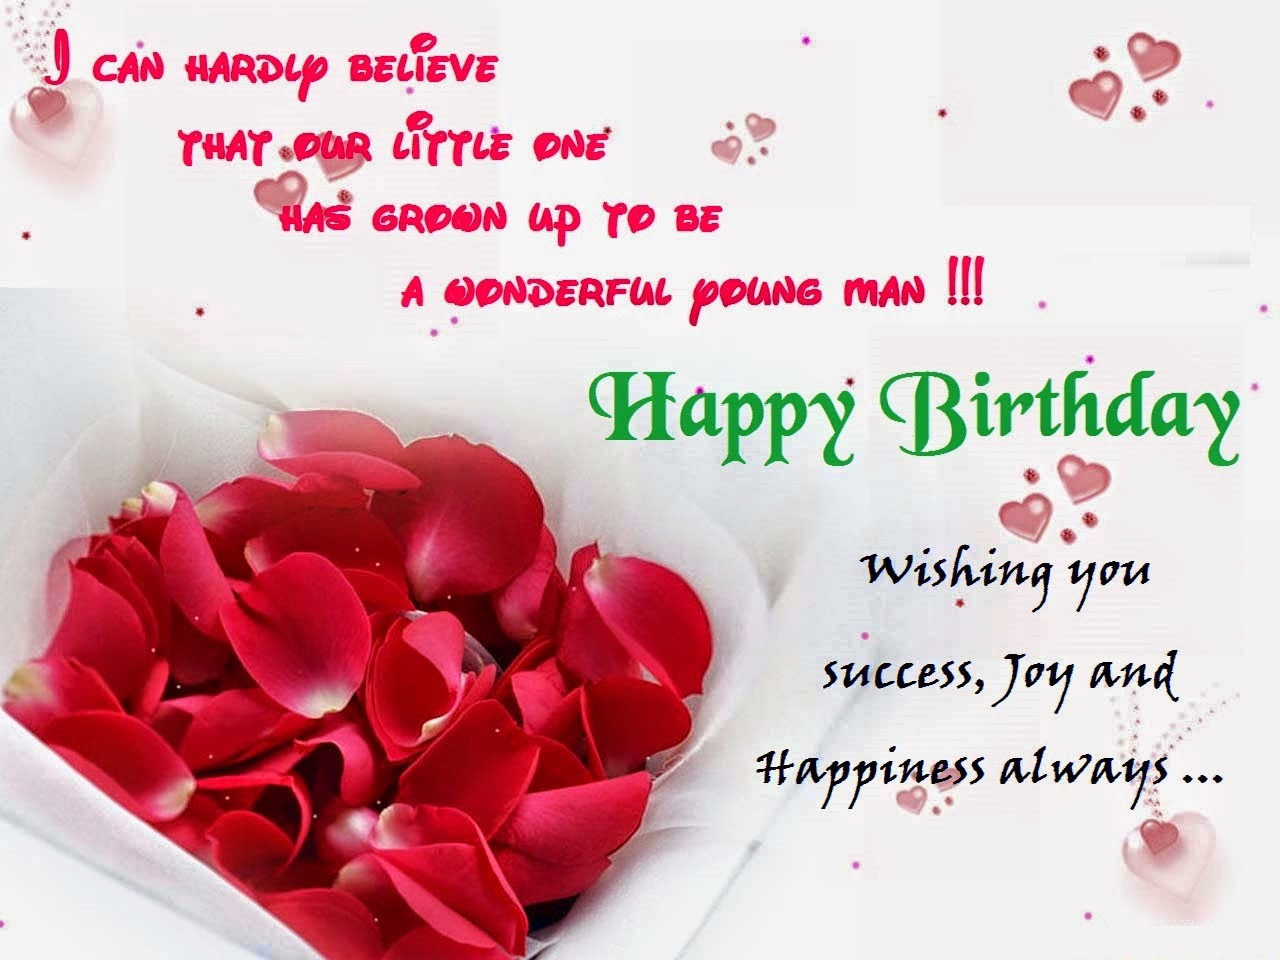 Happy birthday wishes saying quotes for someone or special friend happy birthday wishes saying quotes for someone or special friend thecheapjerseys Images